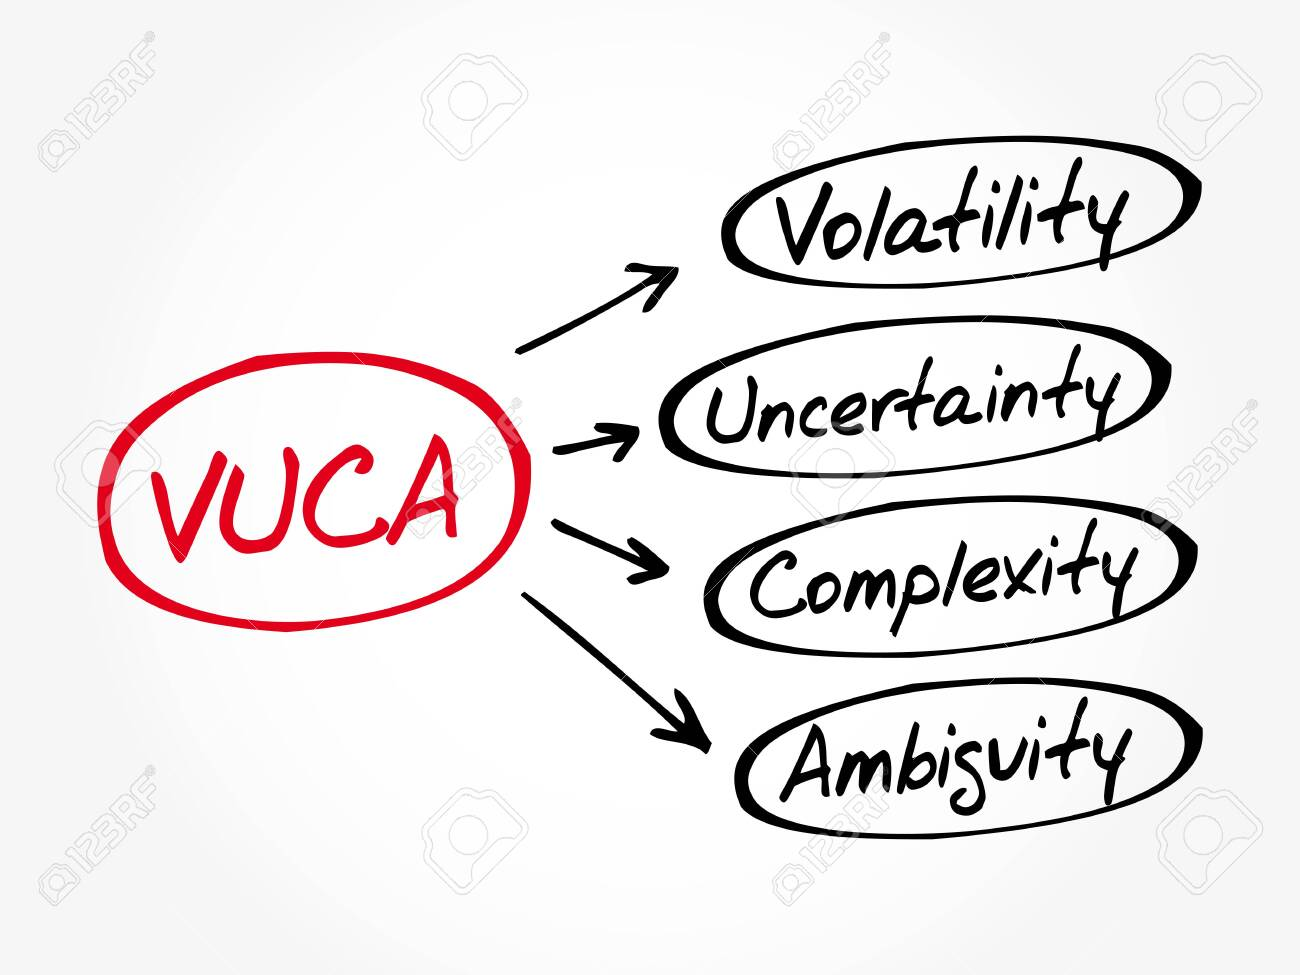 VUCA - Volatility, Uncertainty, Complexity, Ambiguity acronym, business concept background - 123512674